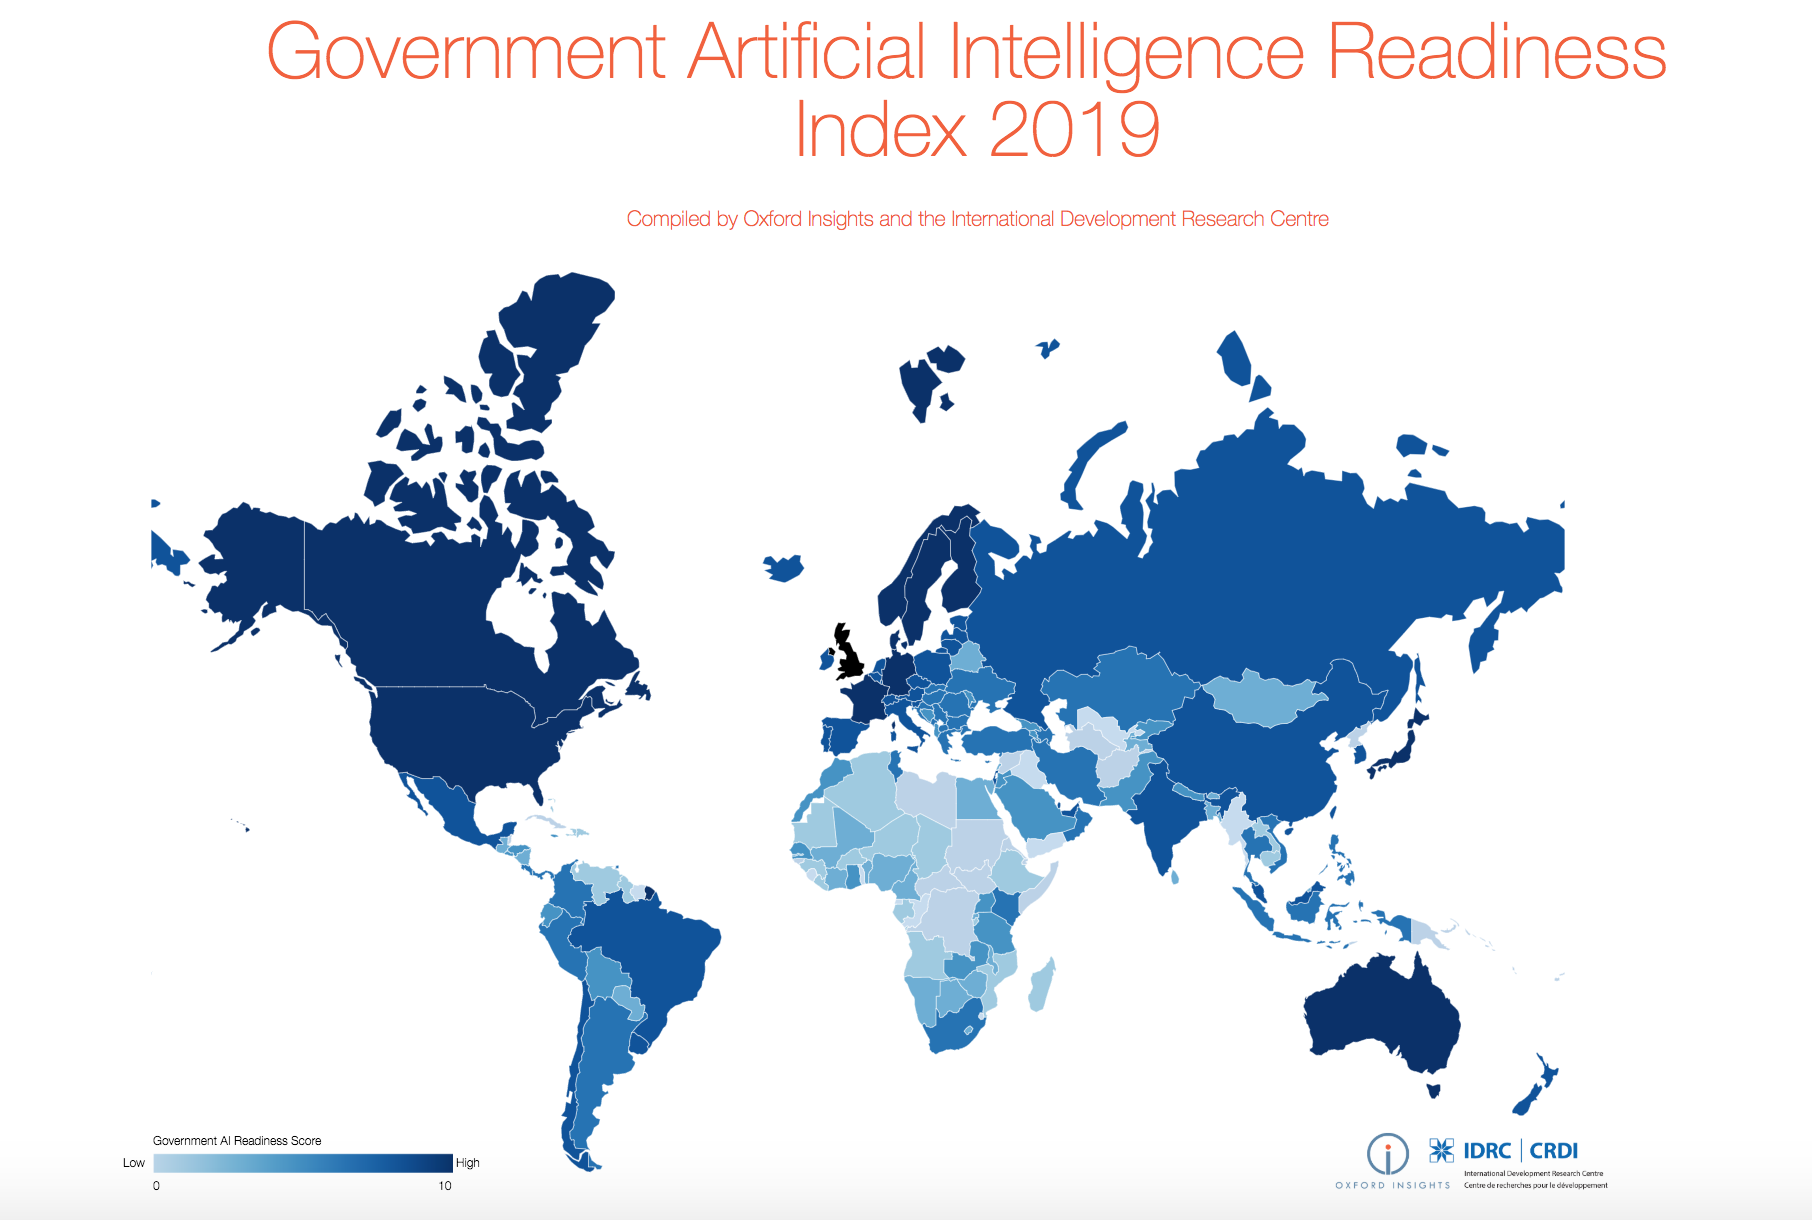 The Government AI Readiness Index 2019: More Equal Implementation Needed to Close Global Inequalities